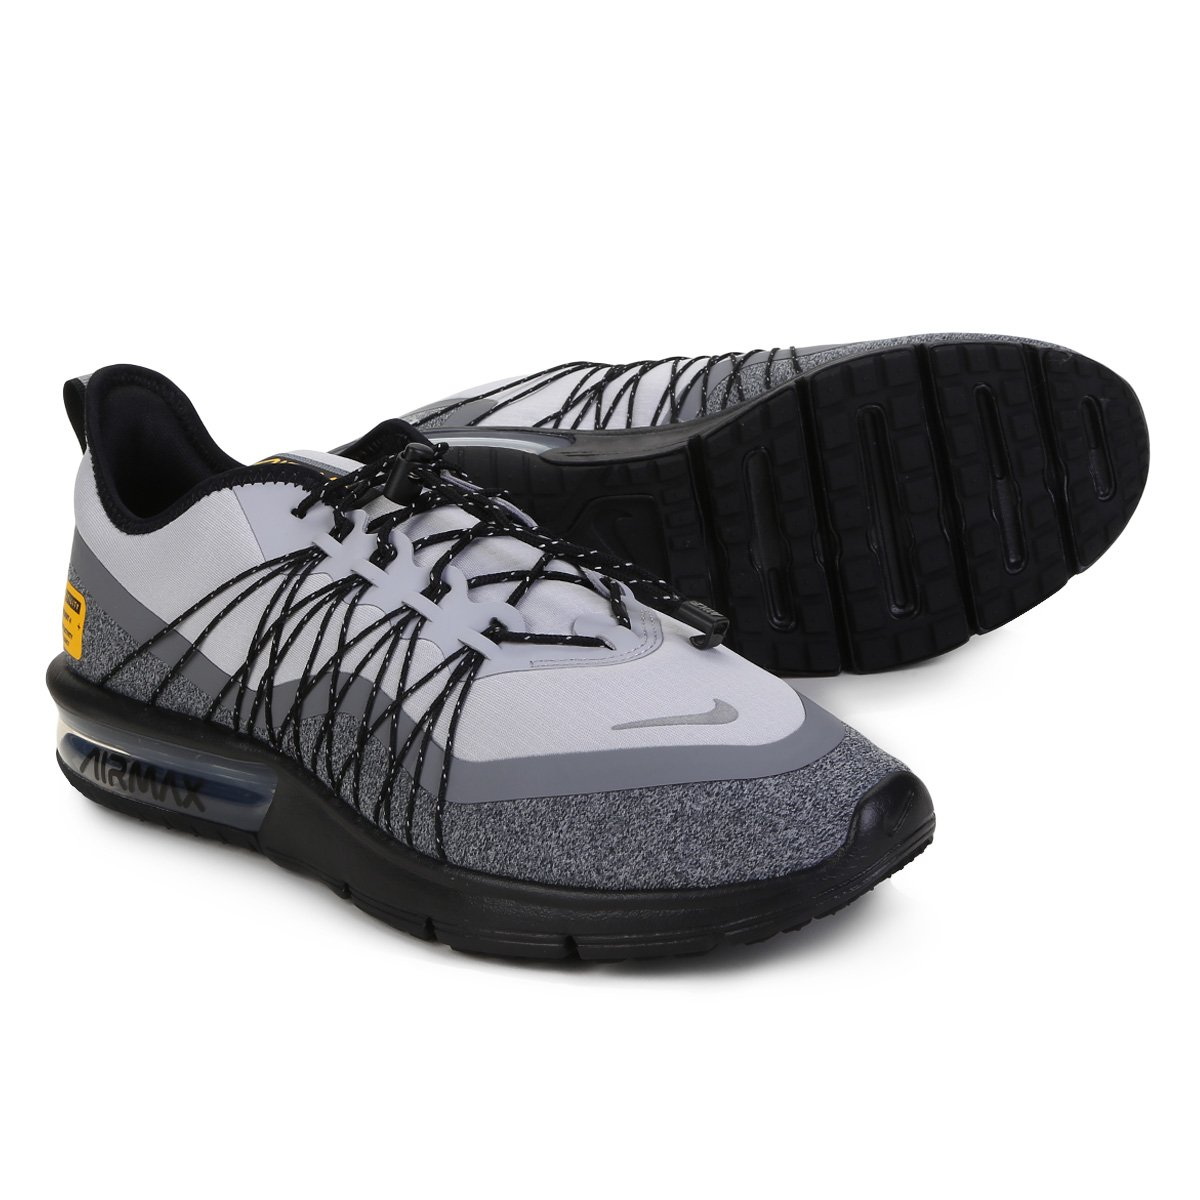 uk availability 5032b e8161 Tênis Nike Air Max Sequent 4 Utility Masculino - Cinza e Preto   Shop Timão